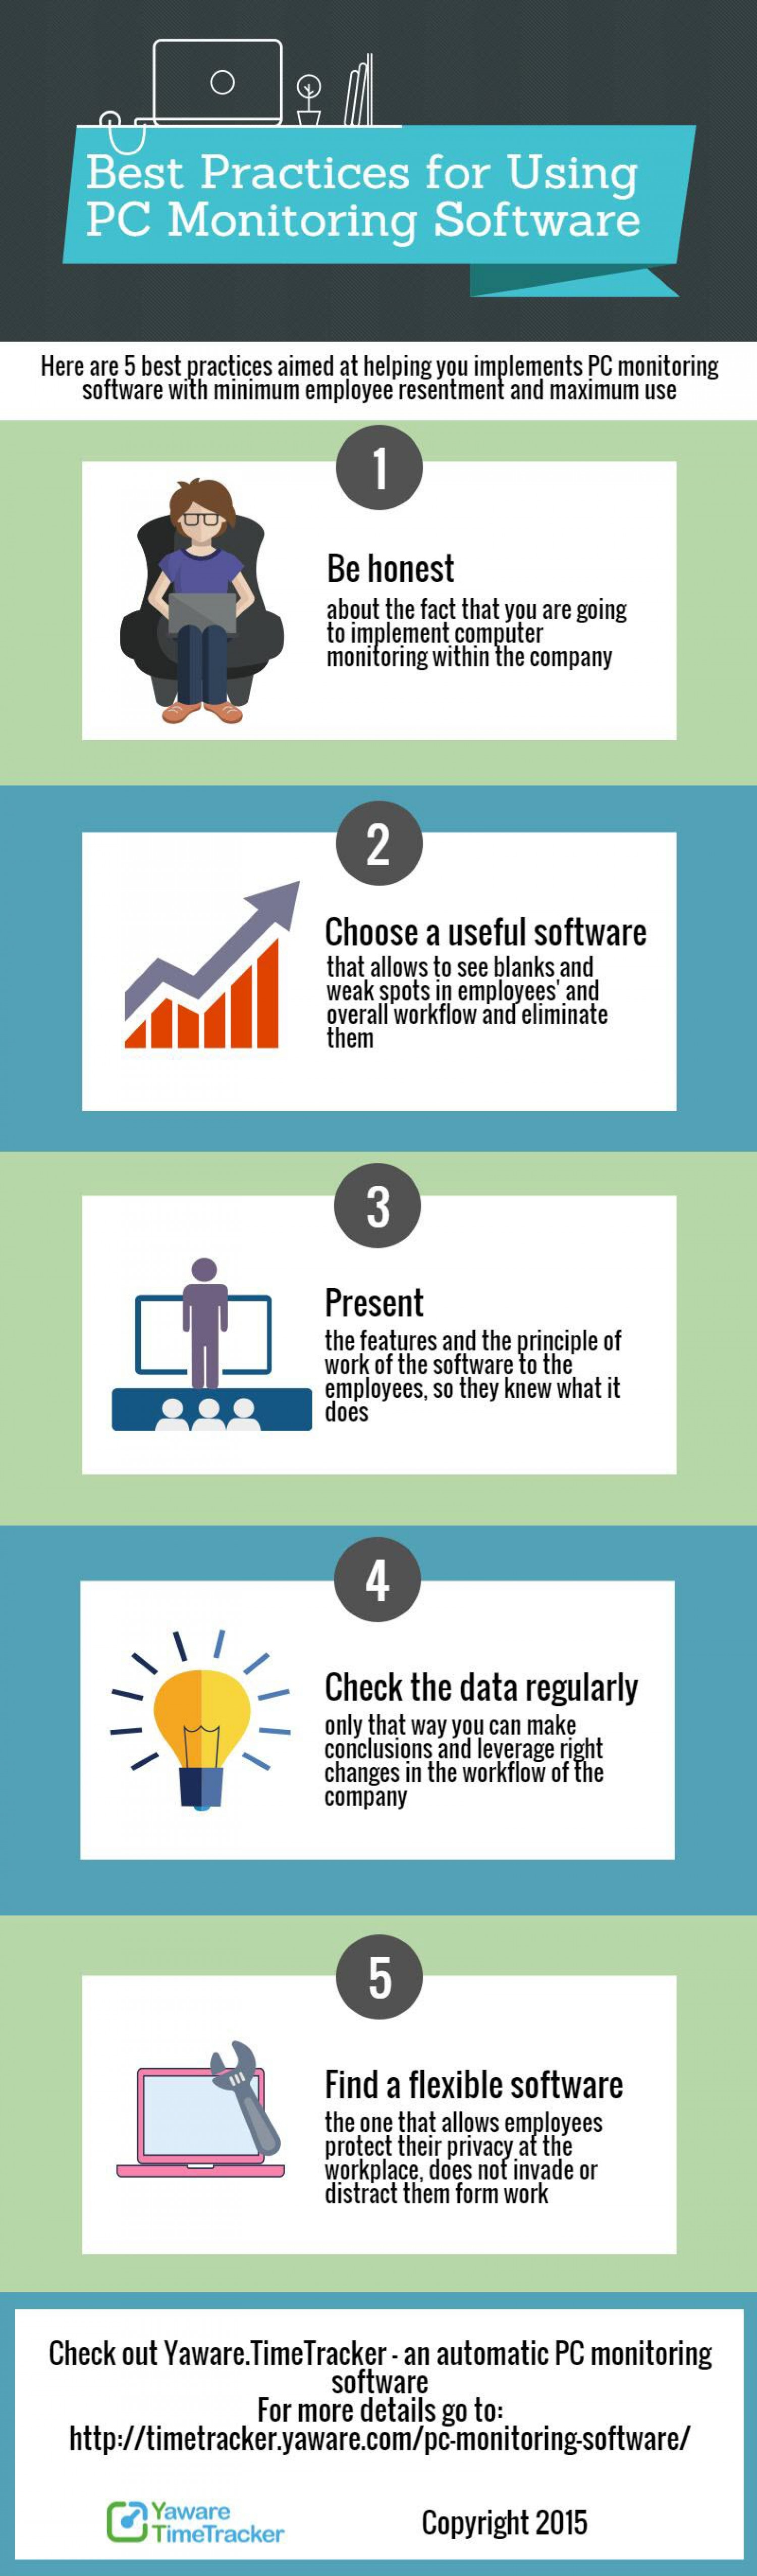 5 Best Practices for Using PC Monitoring Software Infographic